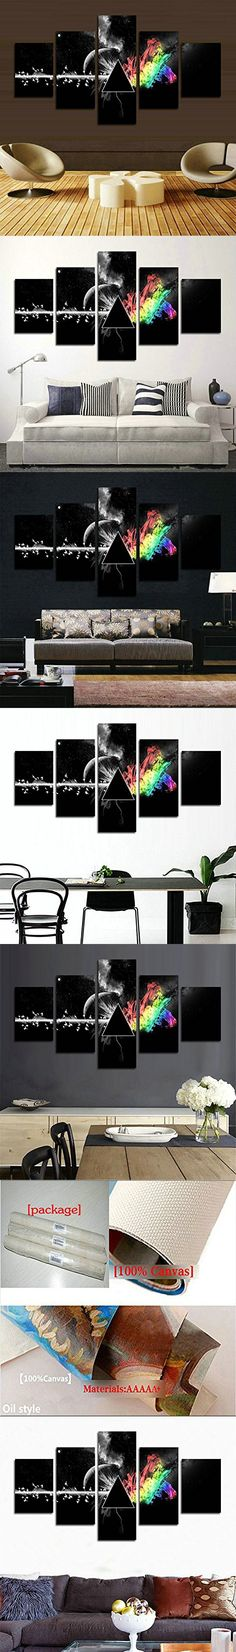 H.COZY5 Piece printed Pink Floyd rock music canvas painting for living room home decor Canvas art wall poster (No Frame) Unframed far265 50 inch x30 inch